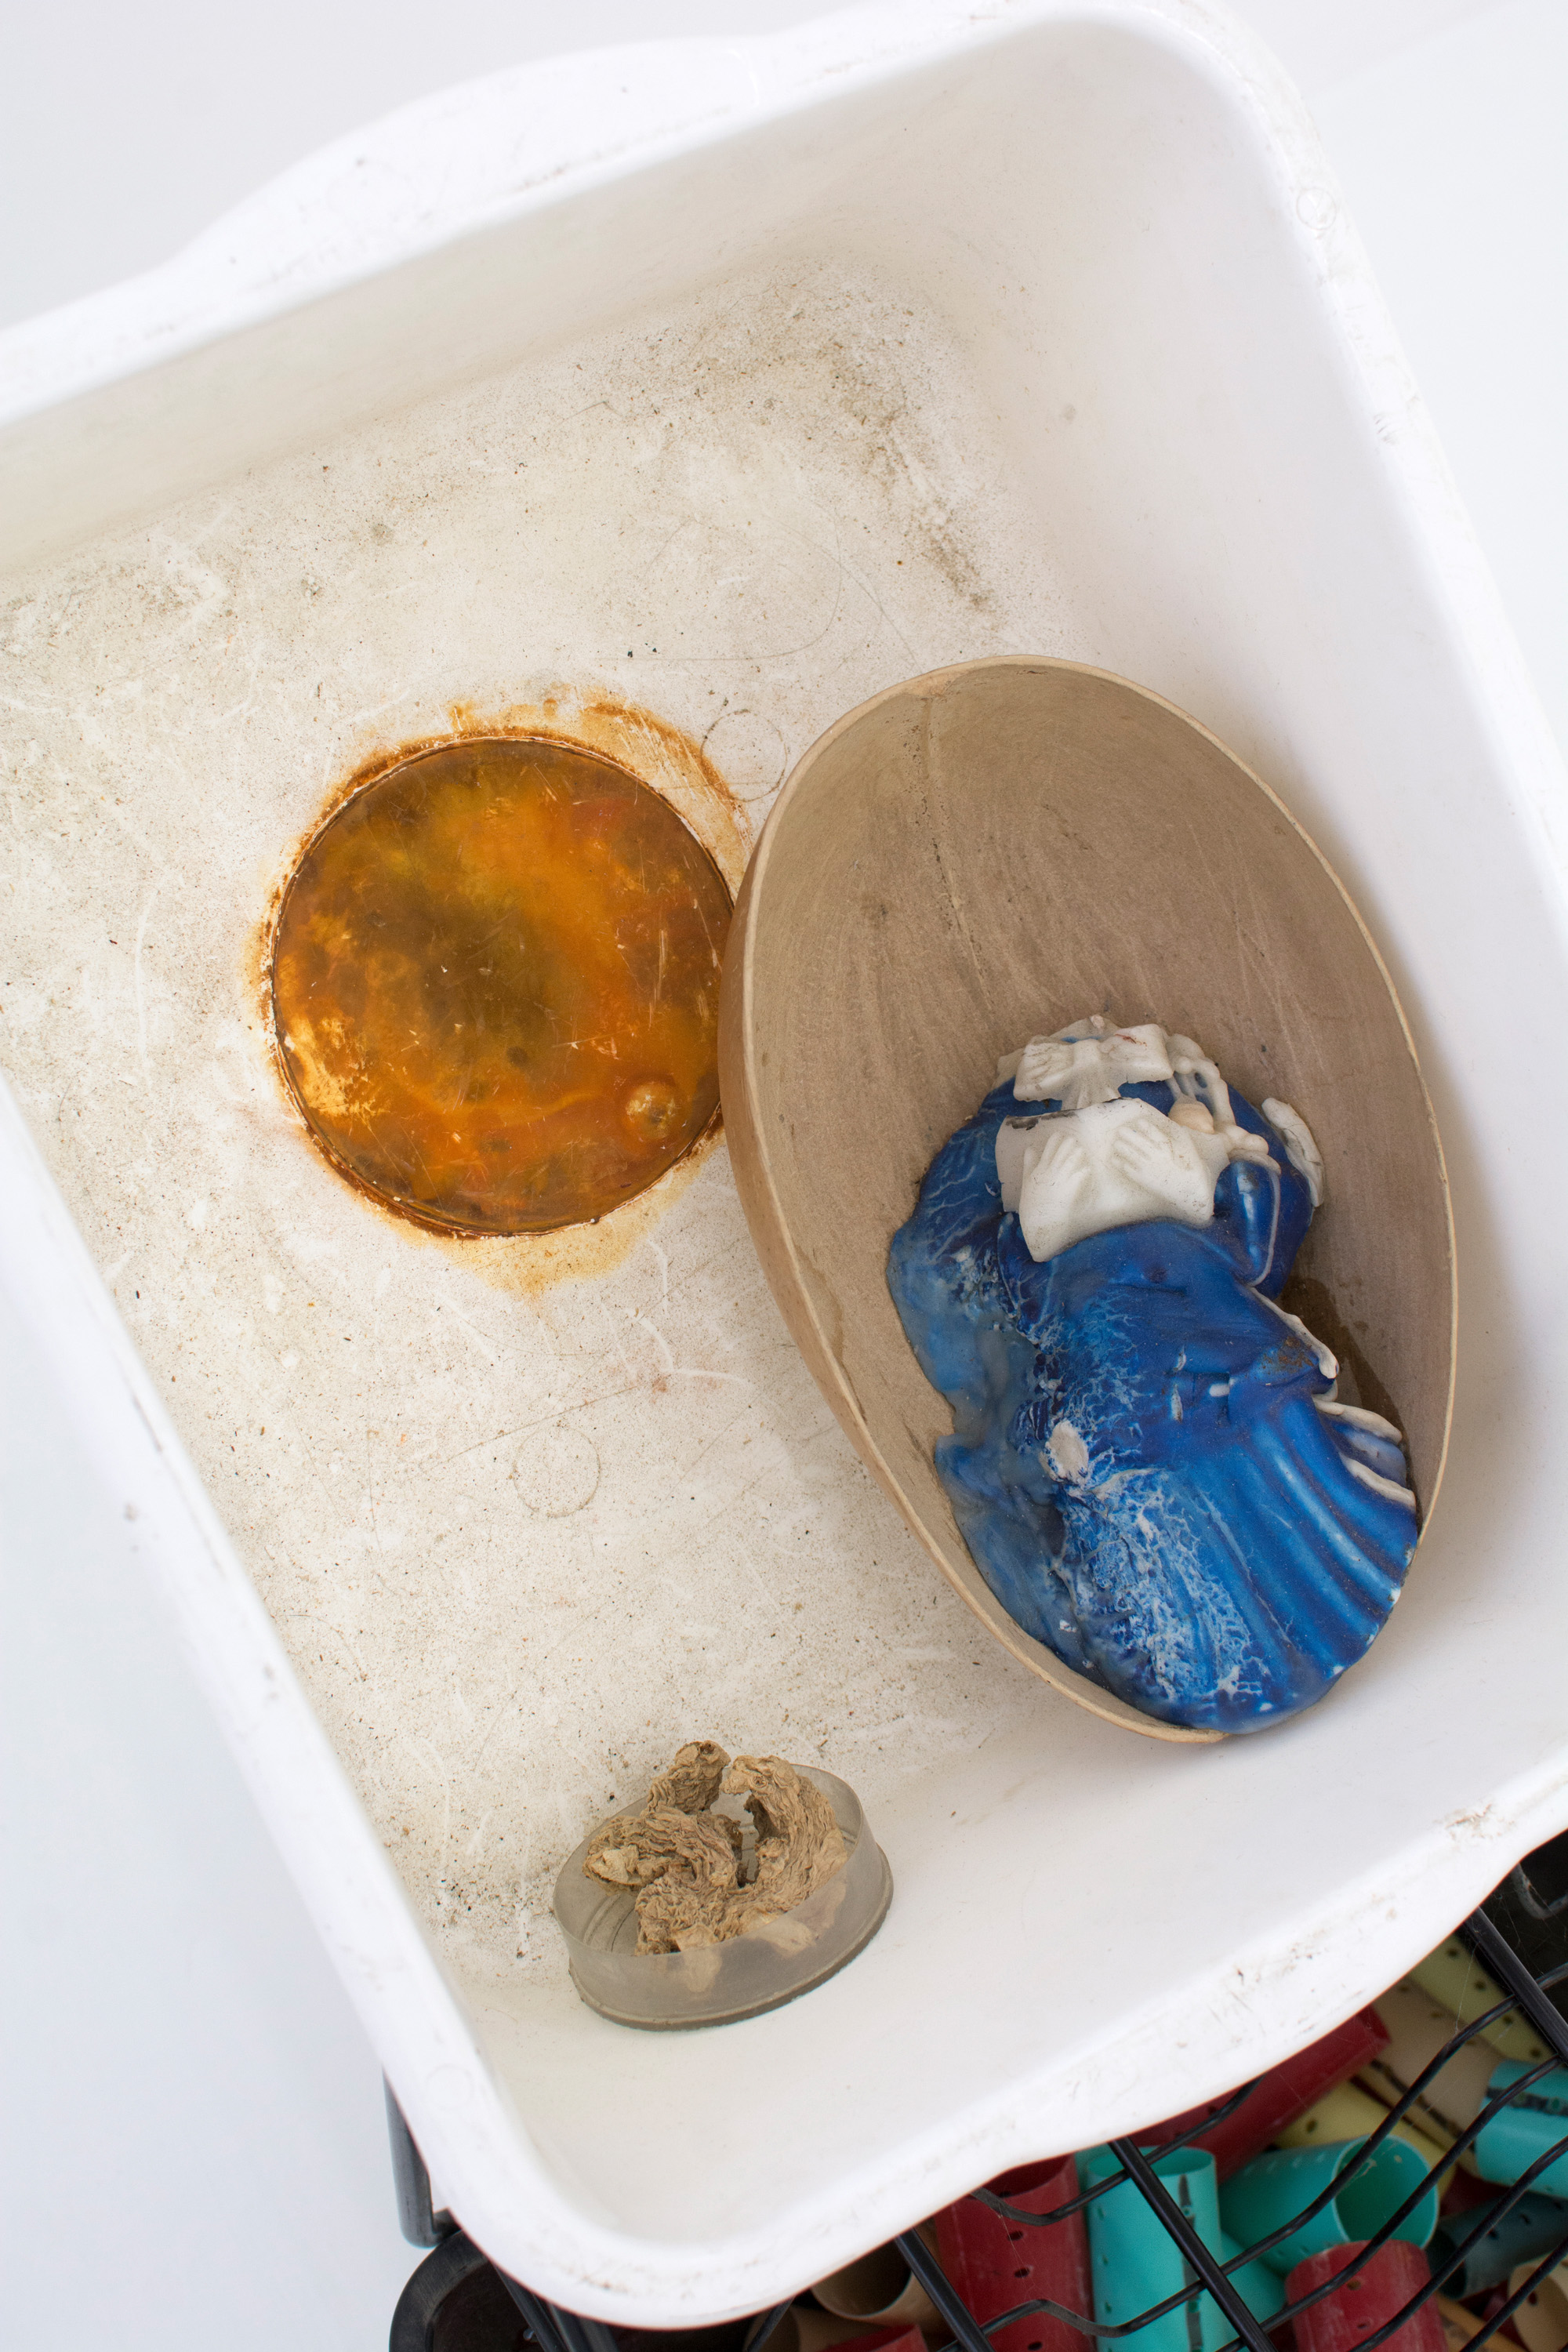 GEORGIA DICKIE    Pisetions 4 , 2016, Plastic drawer and basin, wax, dried ginger, various found objects (detail)